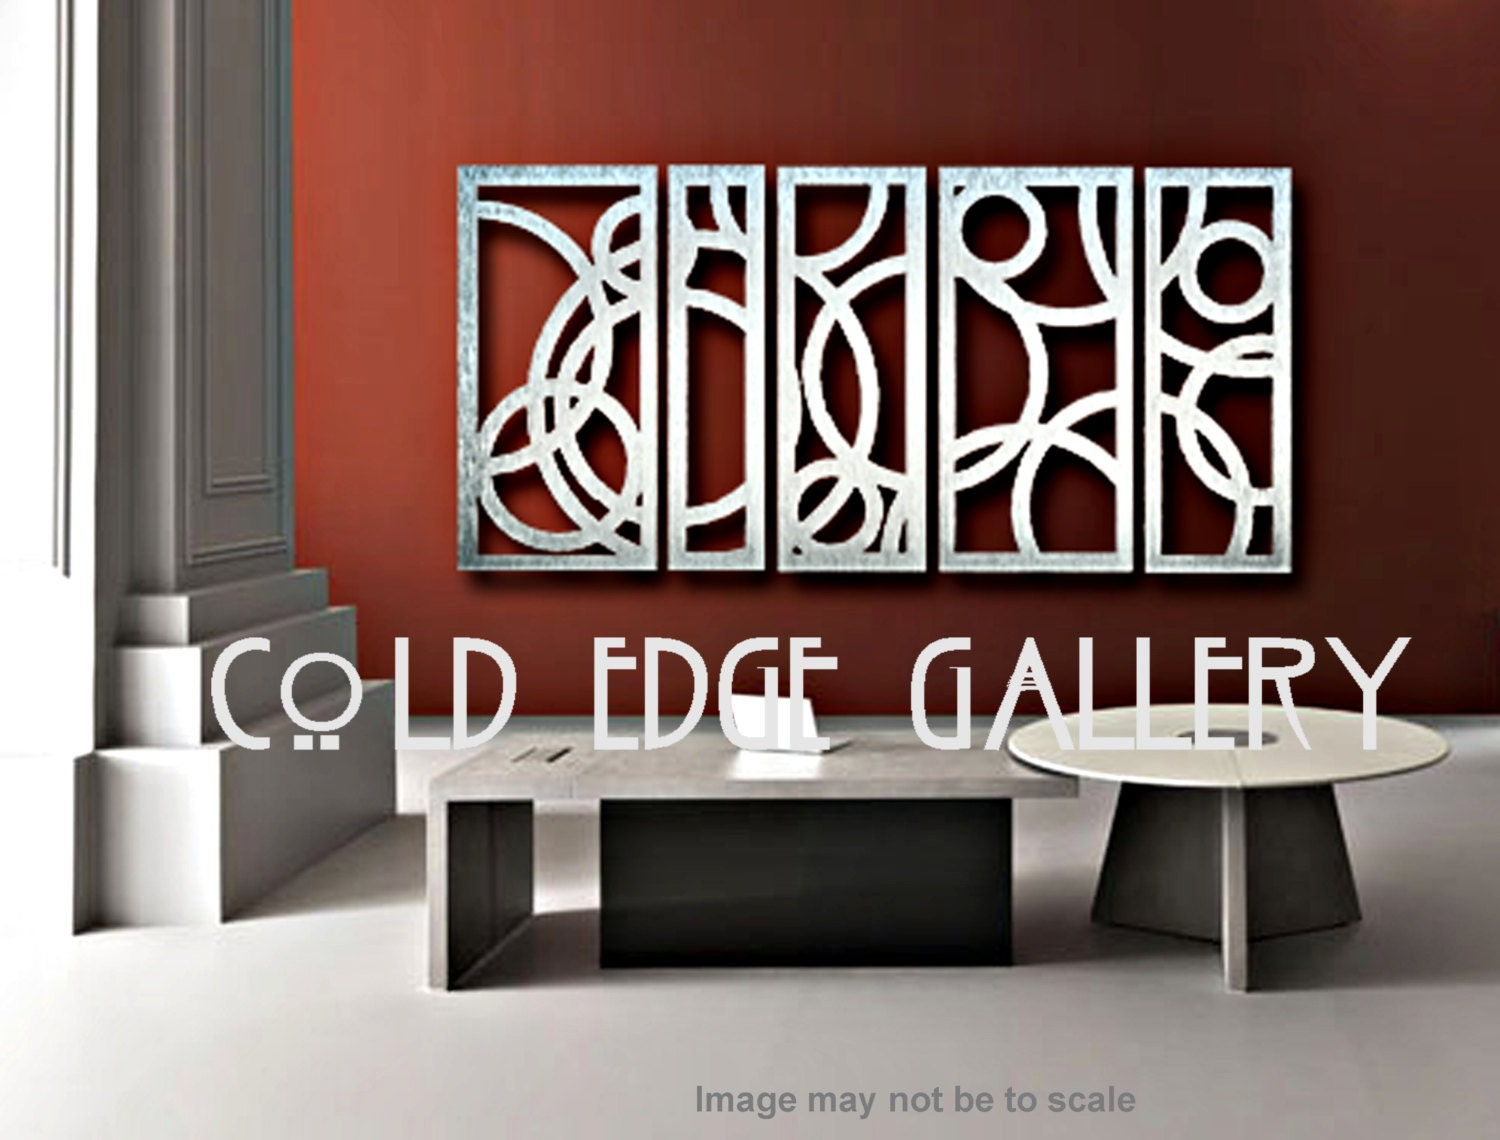 extra large art metal wall art art decor by coldedgegallery. Black Bedroom Furniture Sets. Home Design Ideas